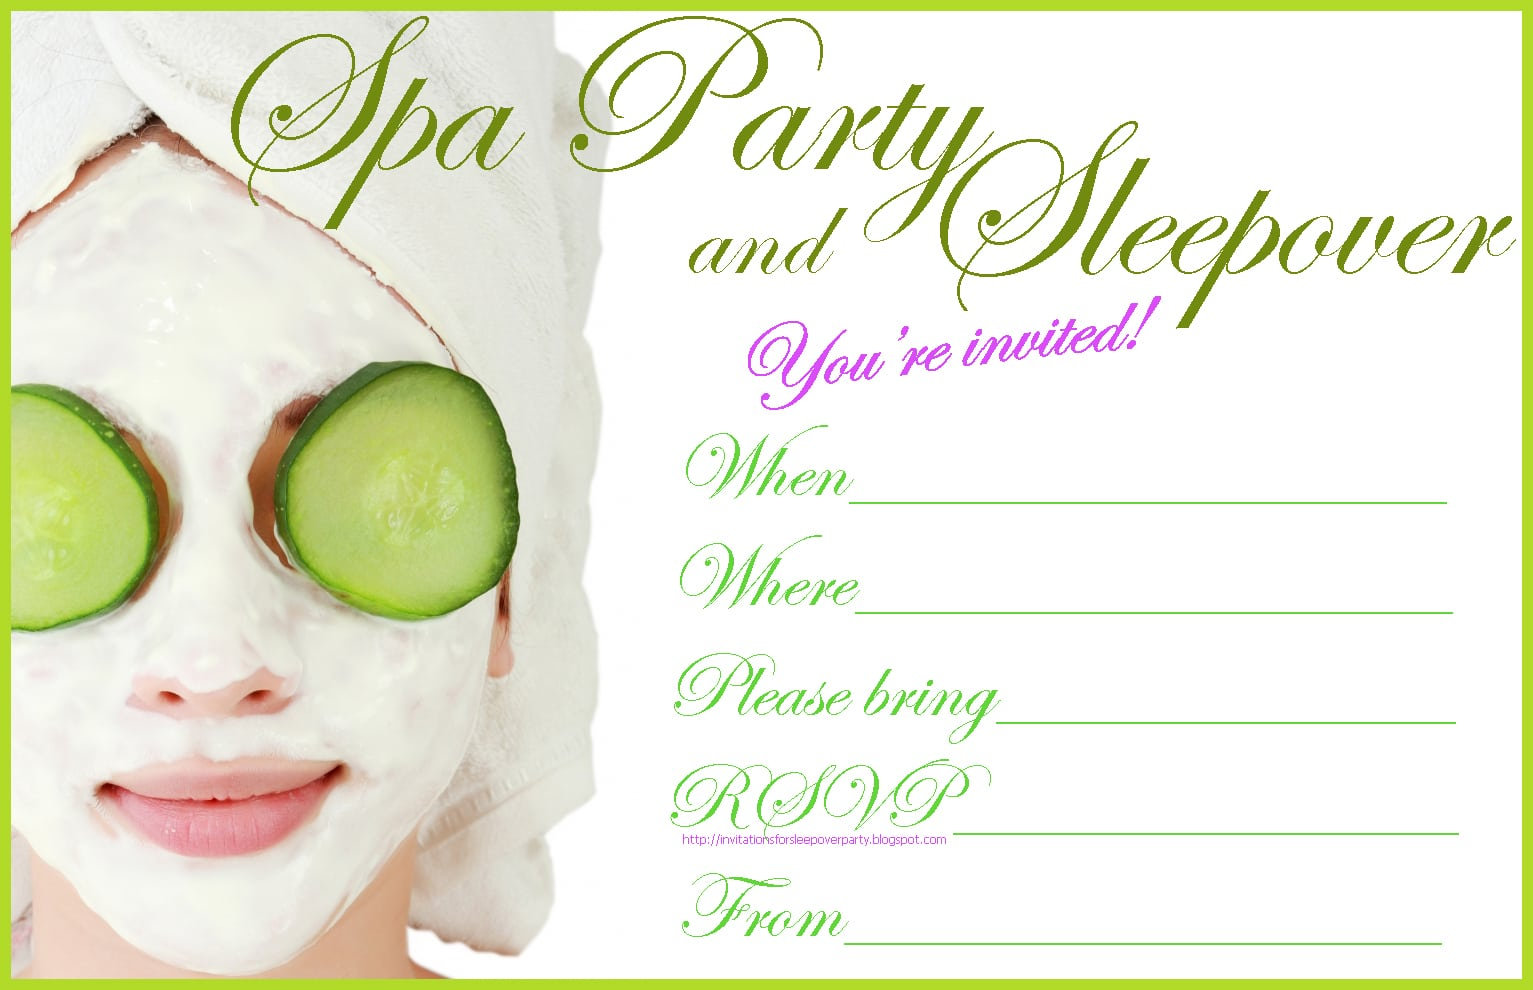 Free Spa Party Invitation Printable